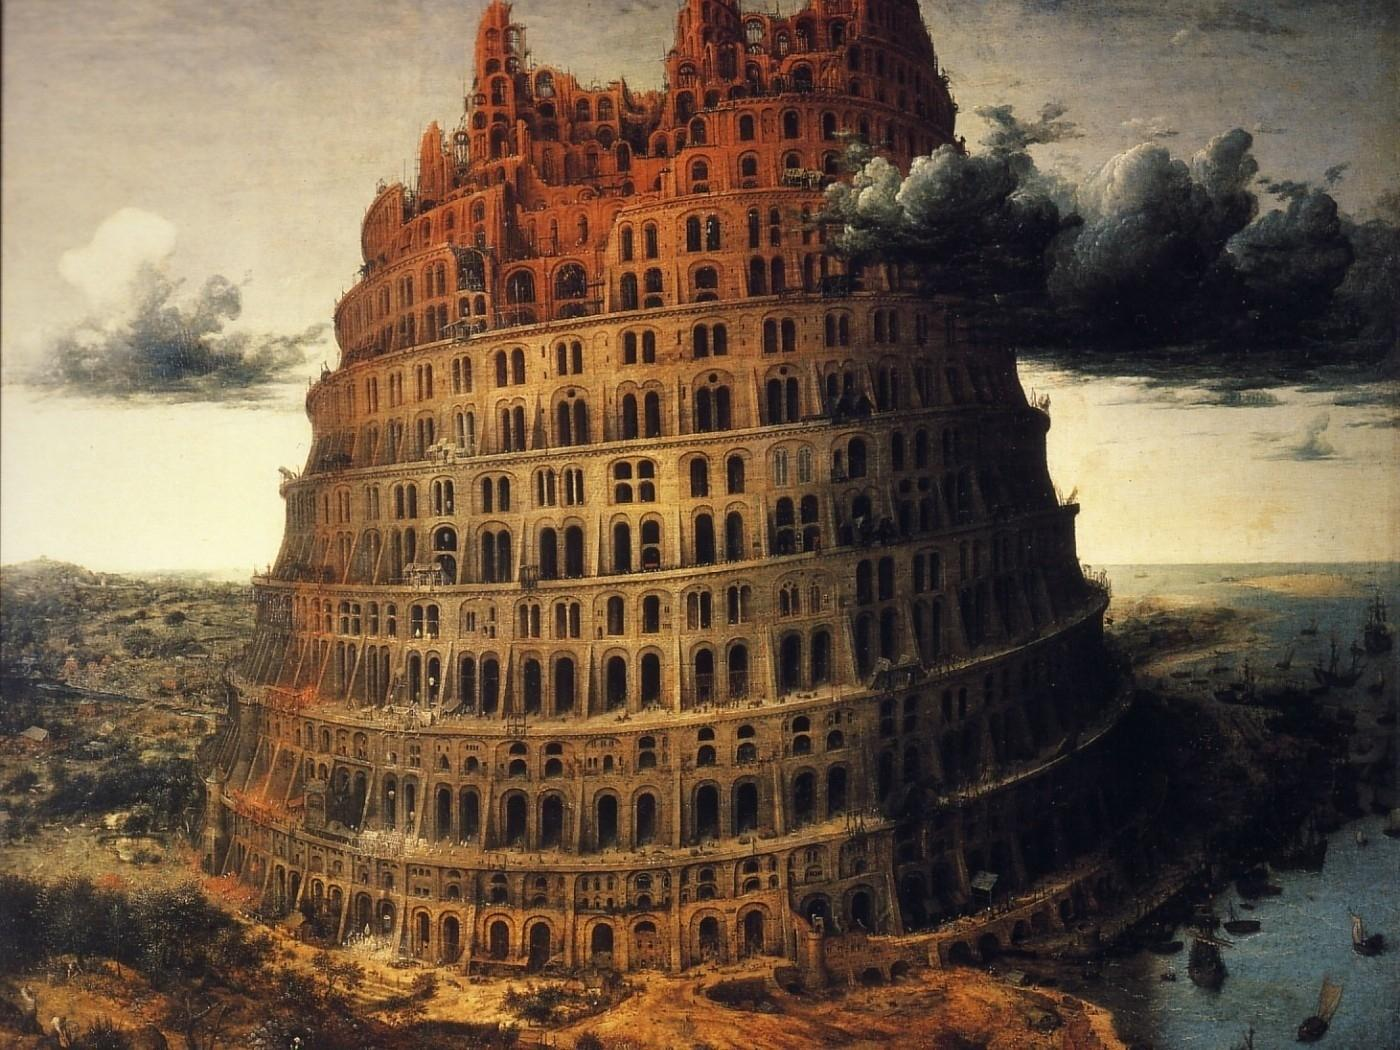 Download Wallpapers, Download 1400x1050 tower of babel digital art 1400x1050 wallpaper Wallpaper –Free Wallpapers Download